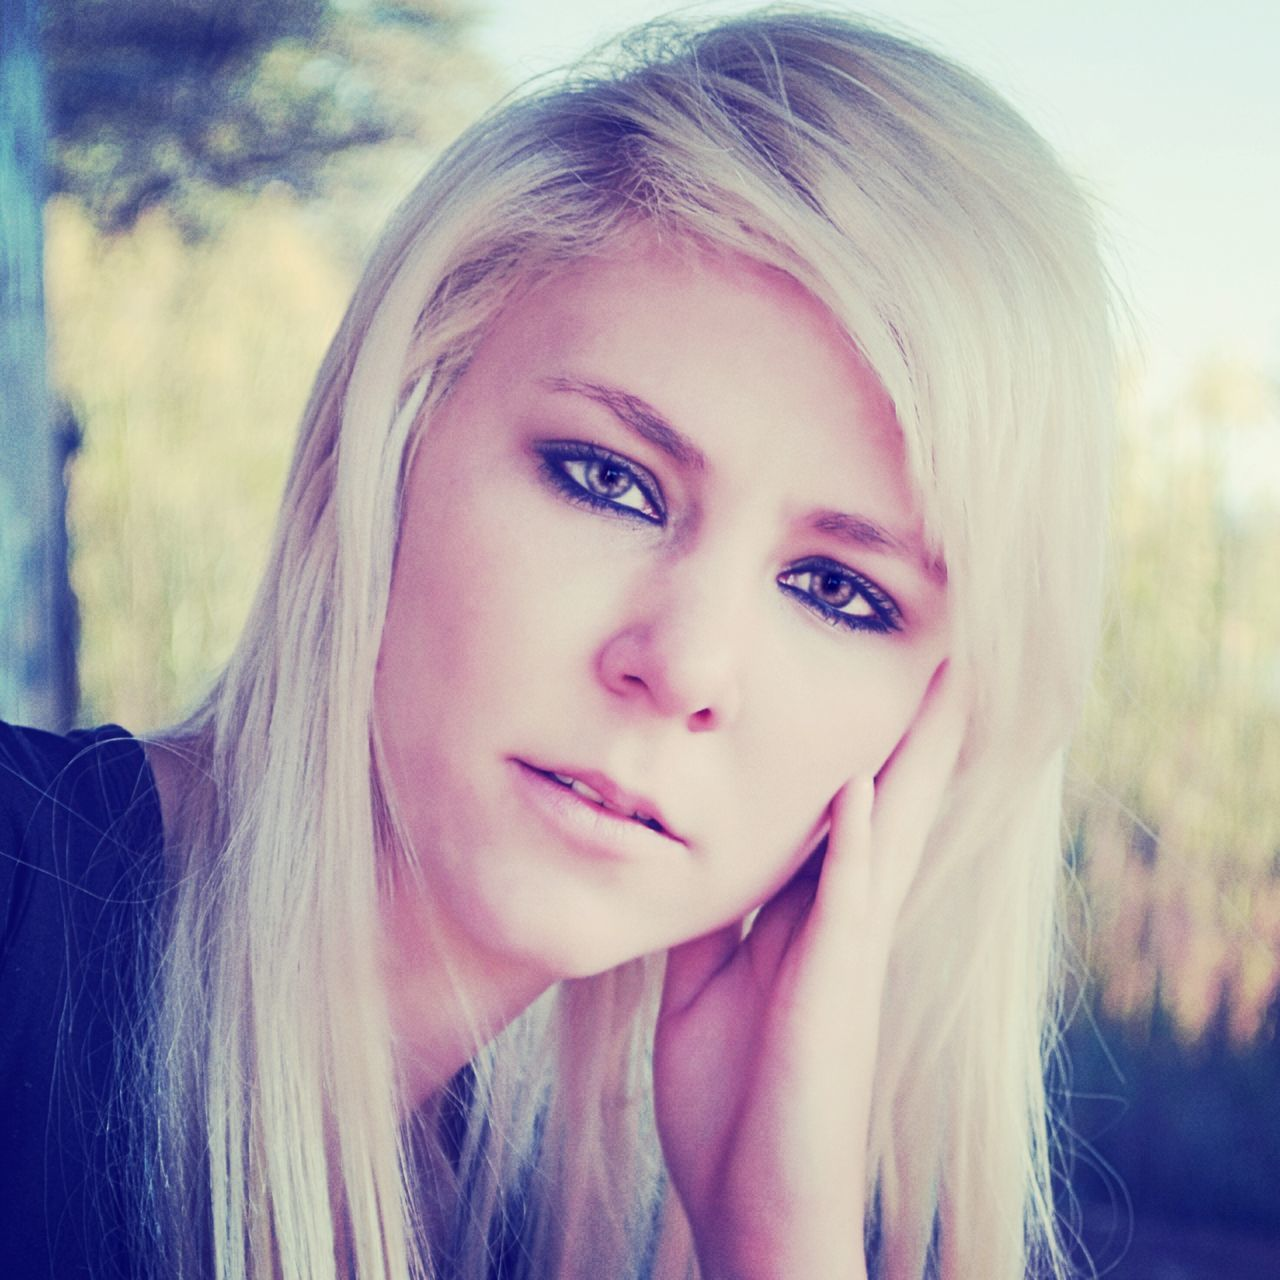 individuality, character, blond hair, beautiful woman, one woman only, outdoors, day, young adult, close-up